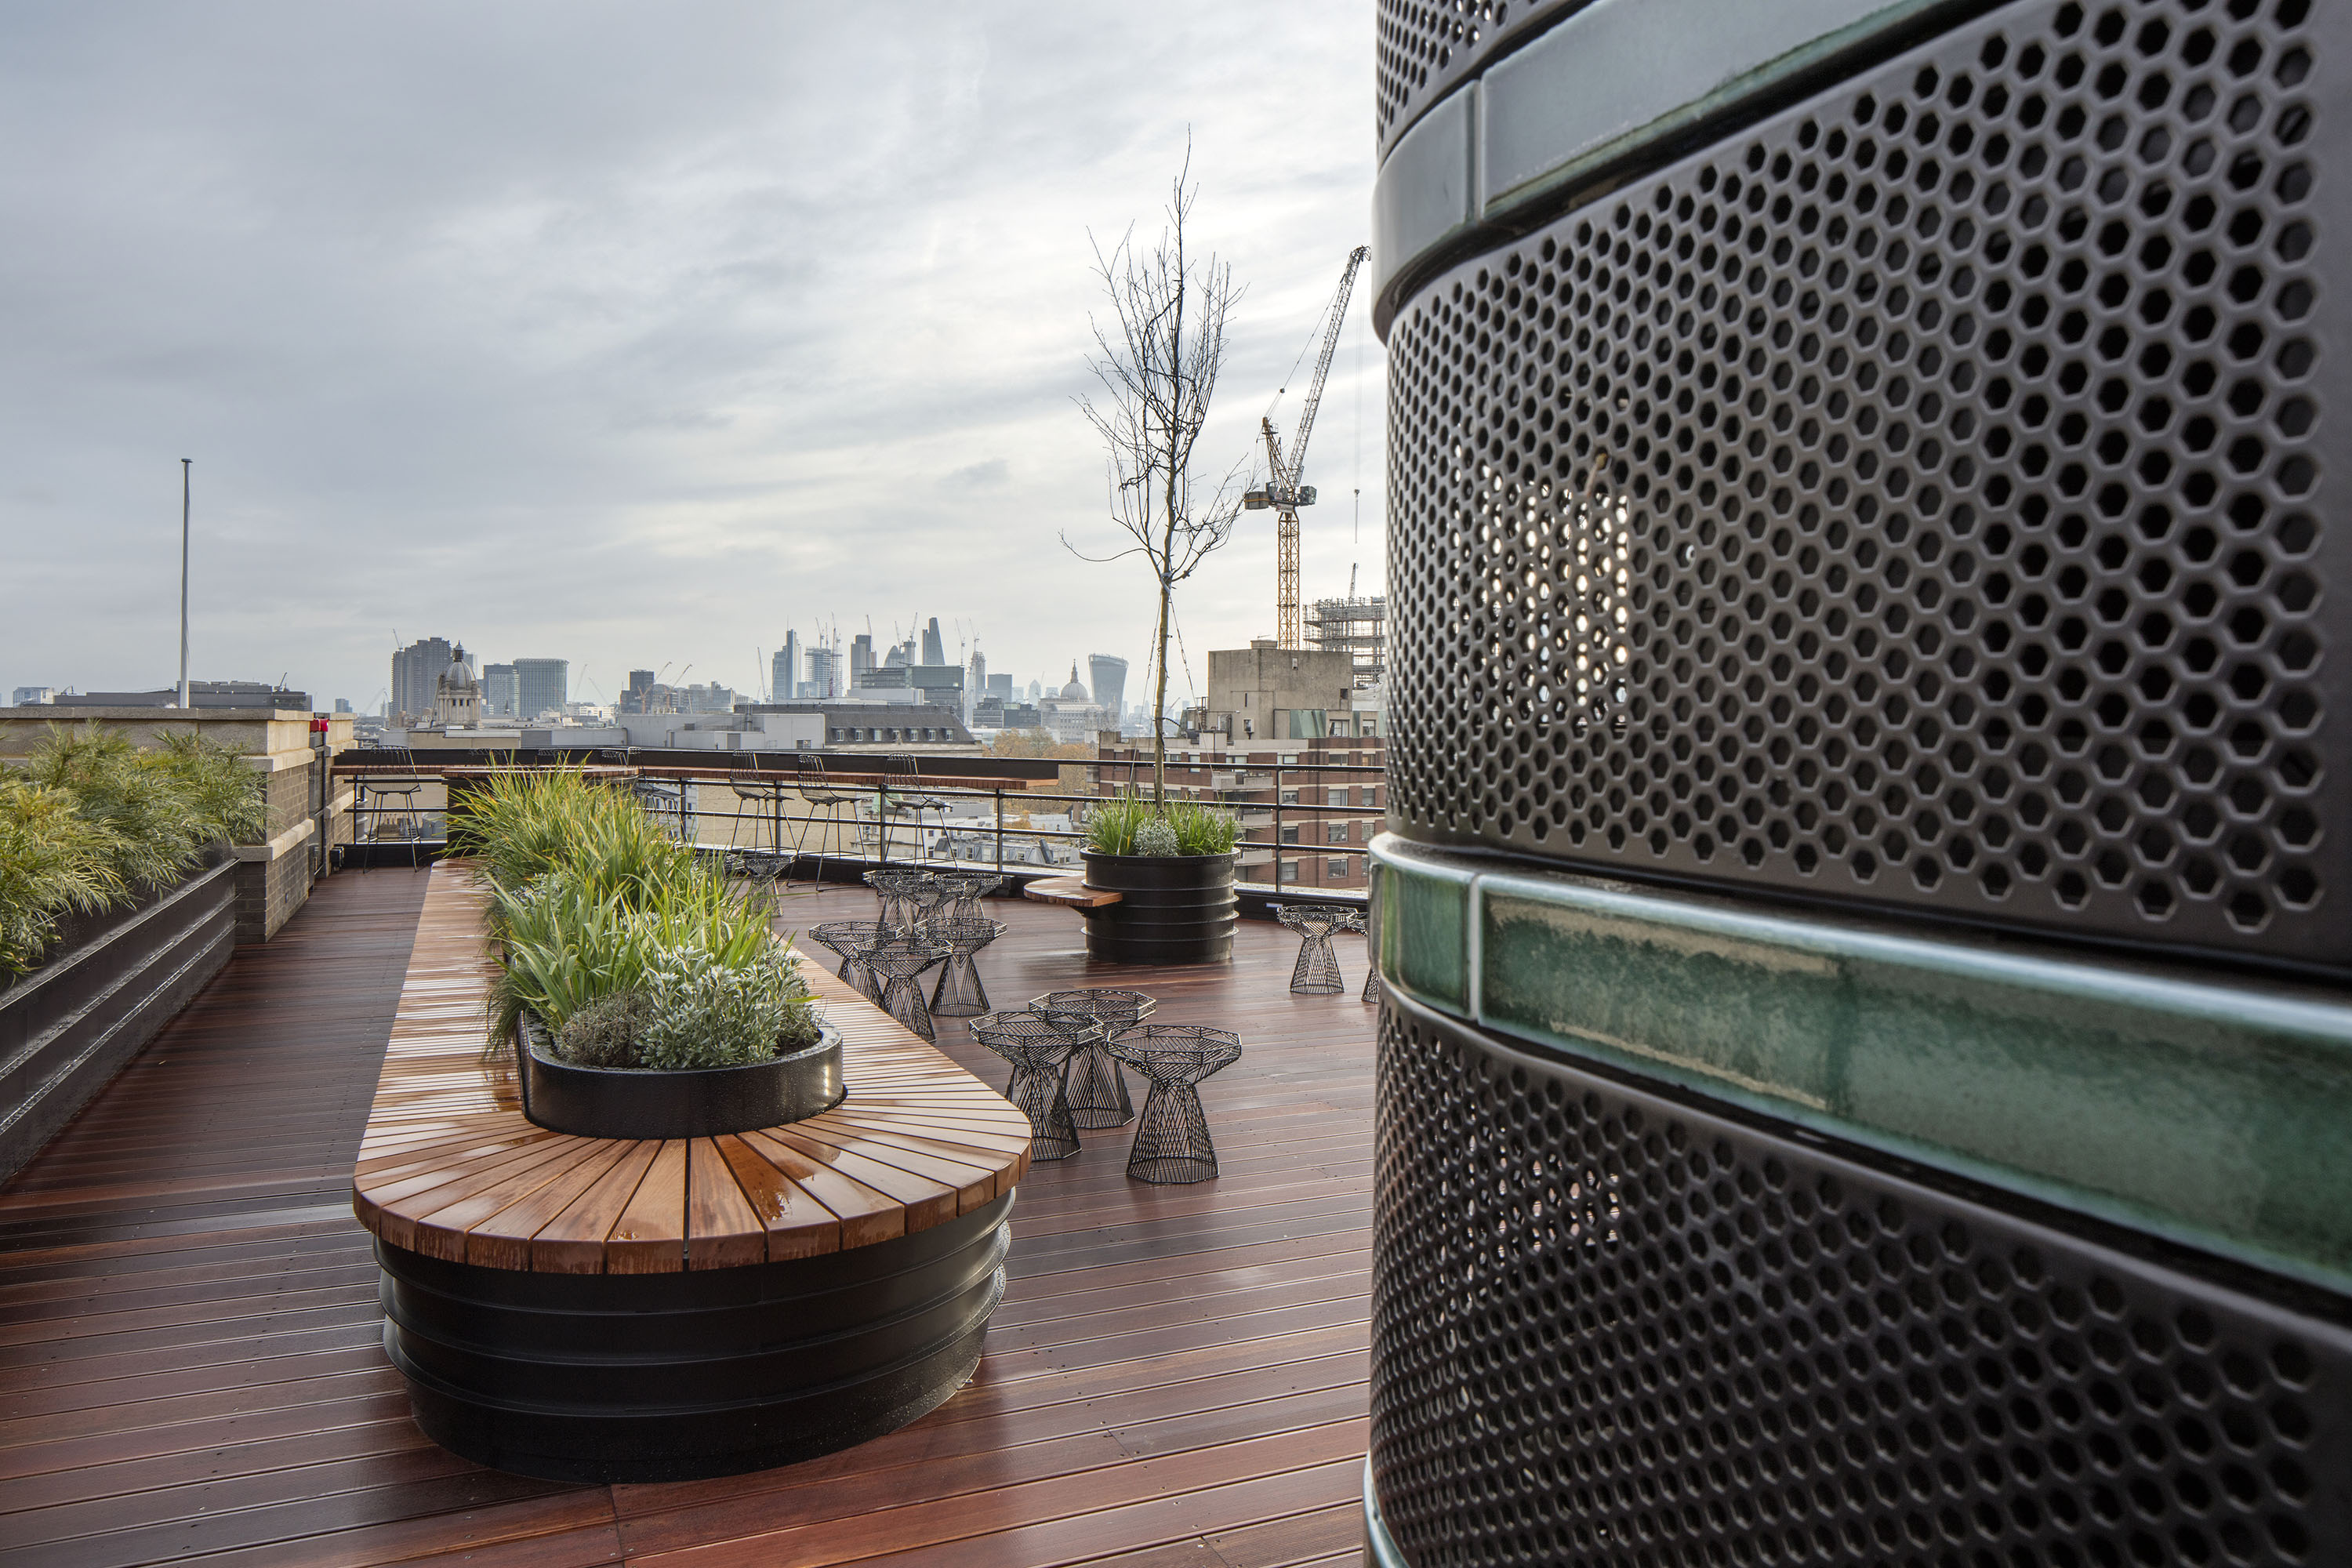 1 New Oxford St roof terrace